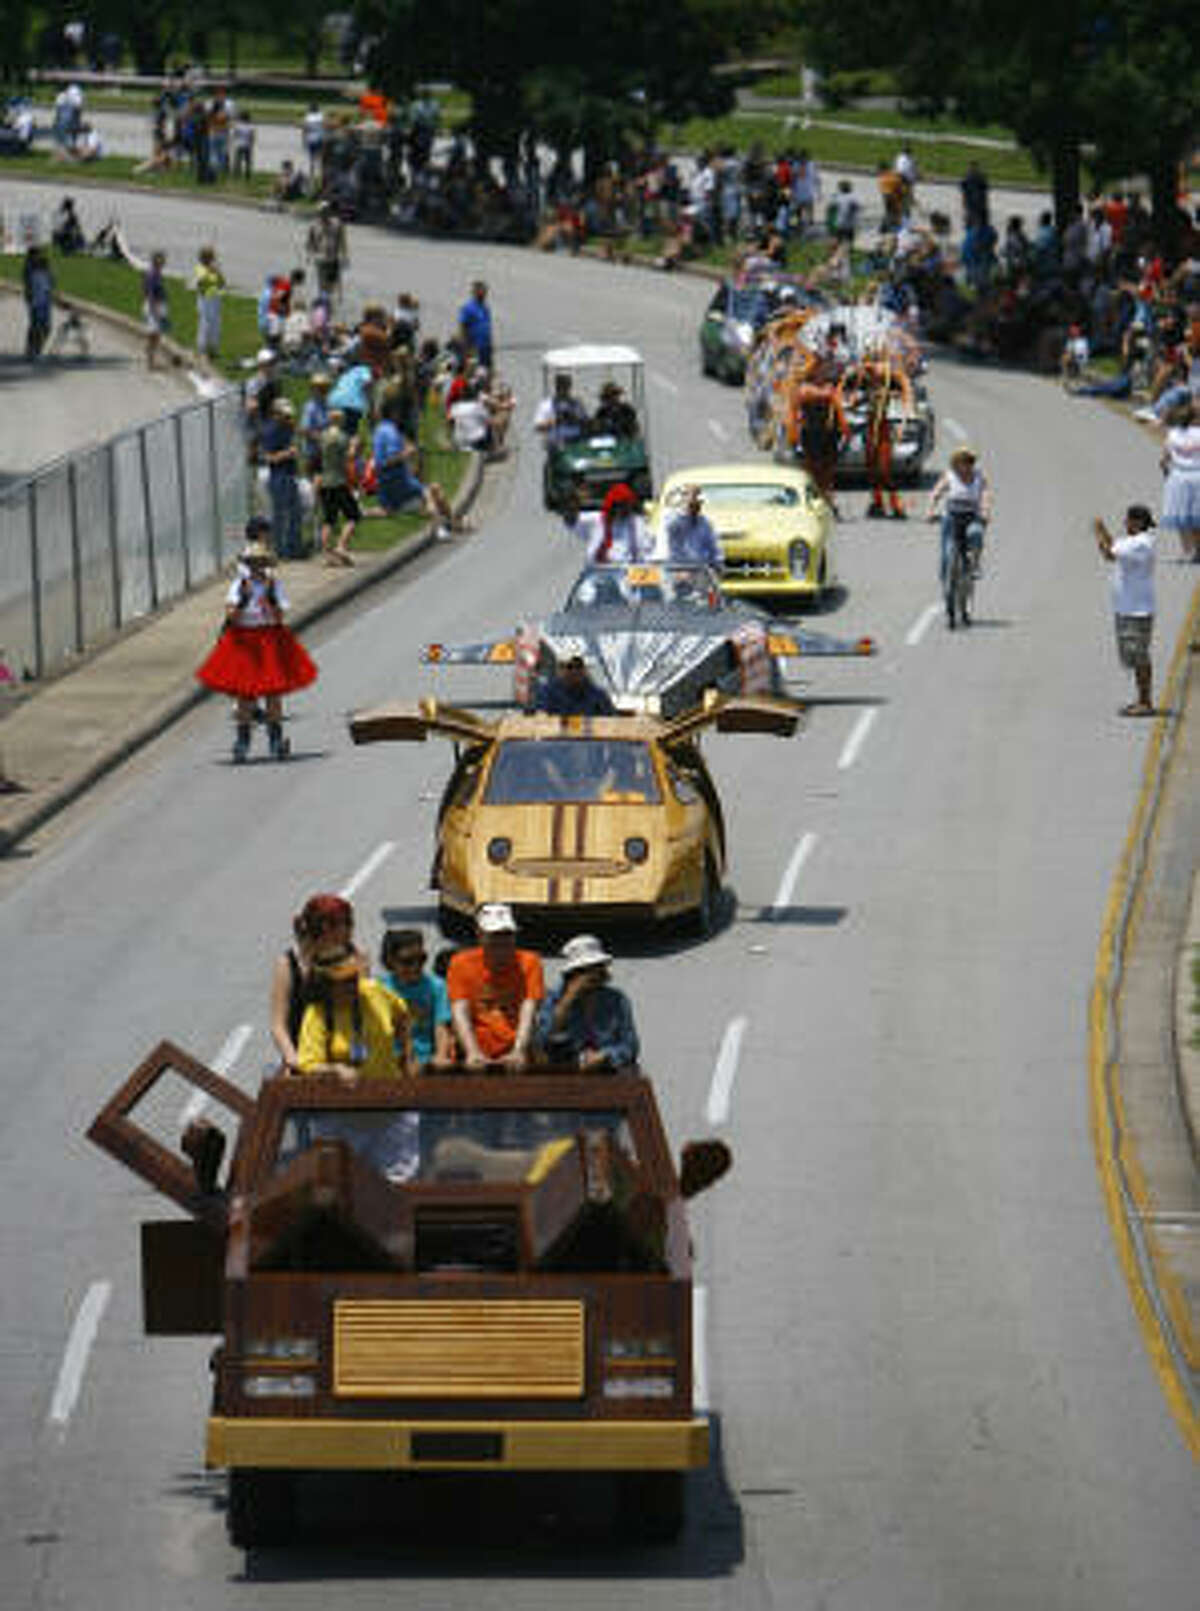 The 20th annual Houston Art Car Parade had cars of different sizes, styles and material mediums Saturday on Allen Parkway in Houston.